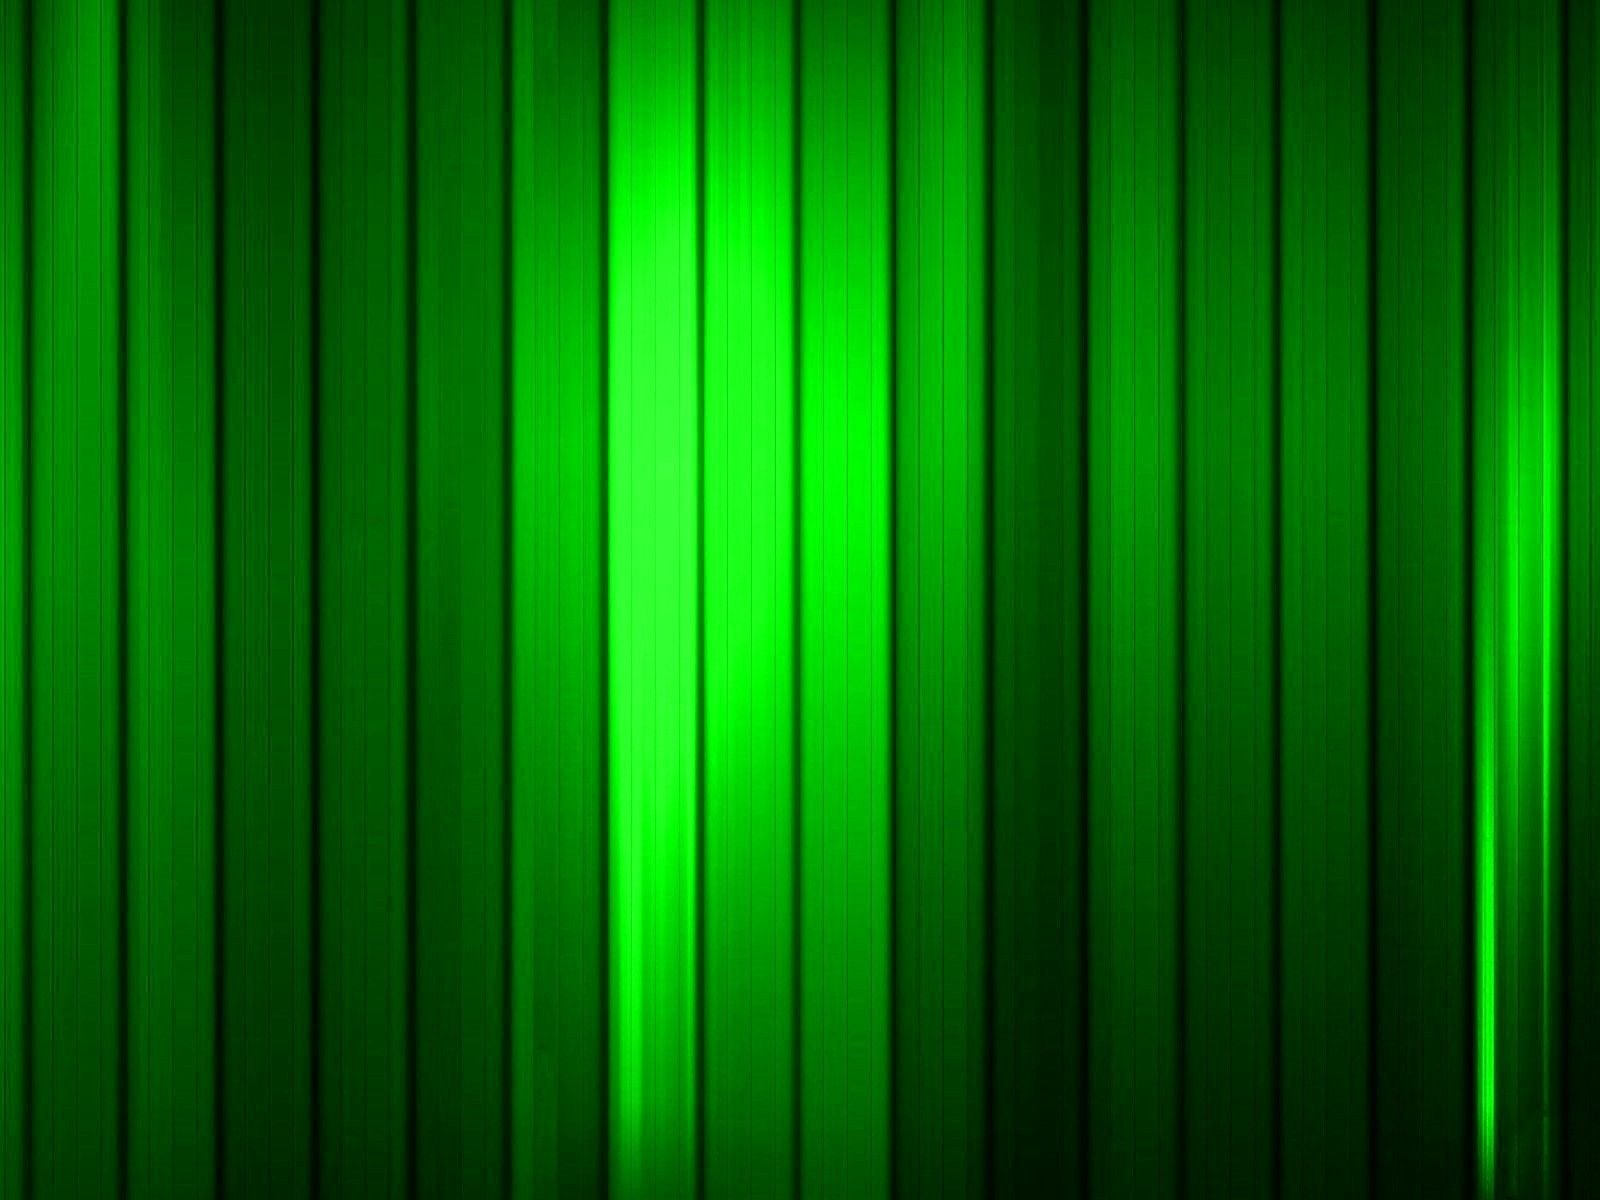 Green Wallpaper 15 Green wallpaper Abstract wallpaper Desktop wallpaper